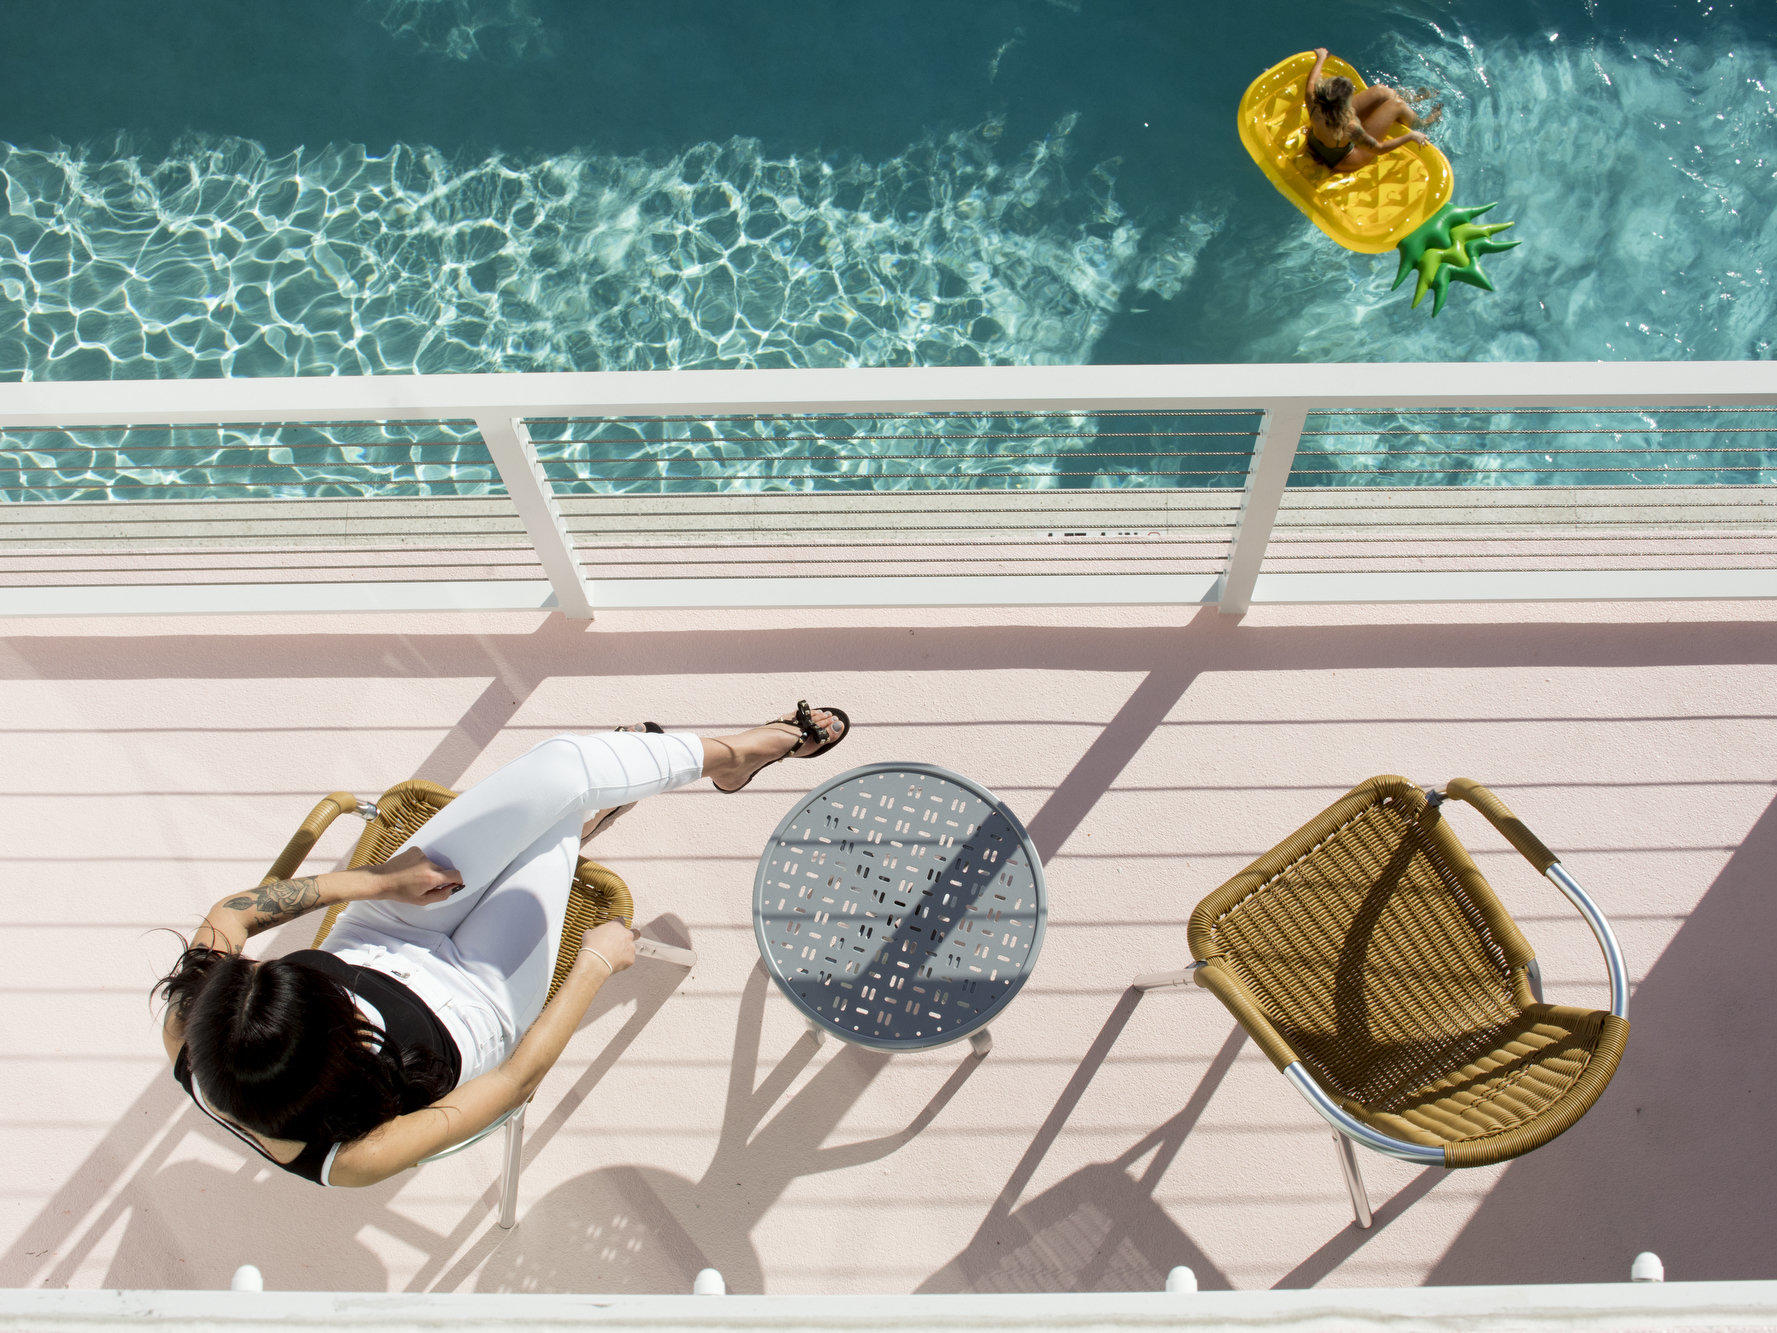 woman sitting on balcony looking down at pool